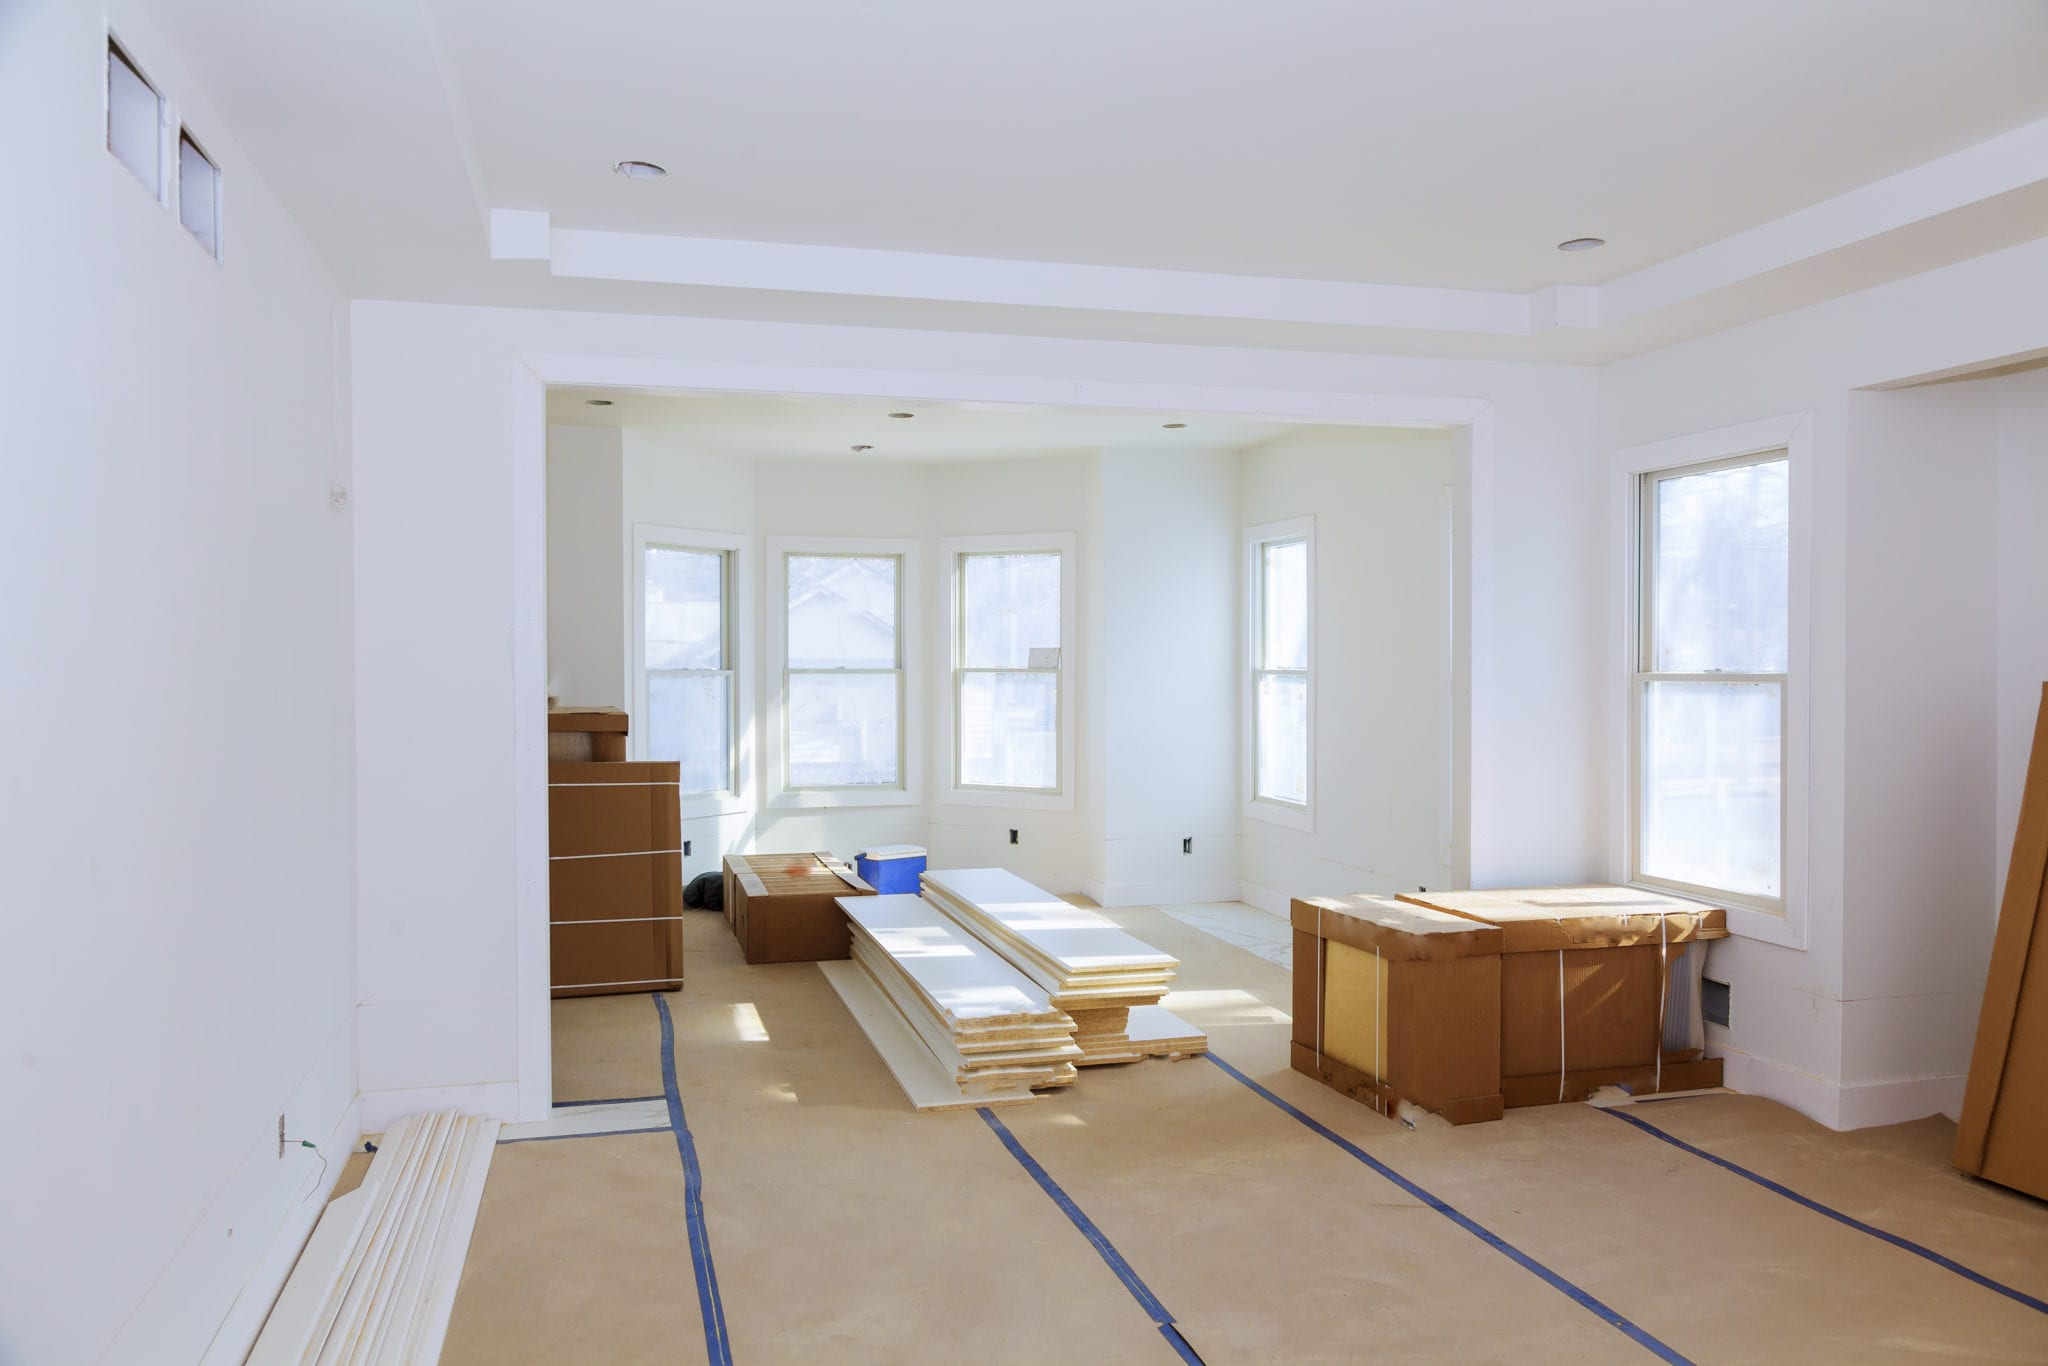 Construction building industry drywall tape and finish details new home construction interior